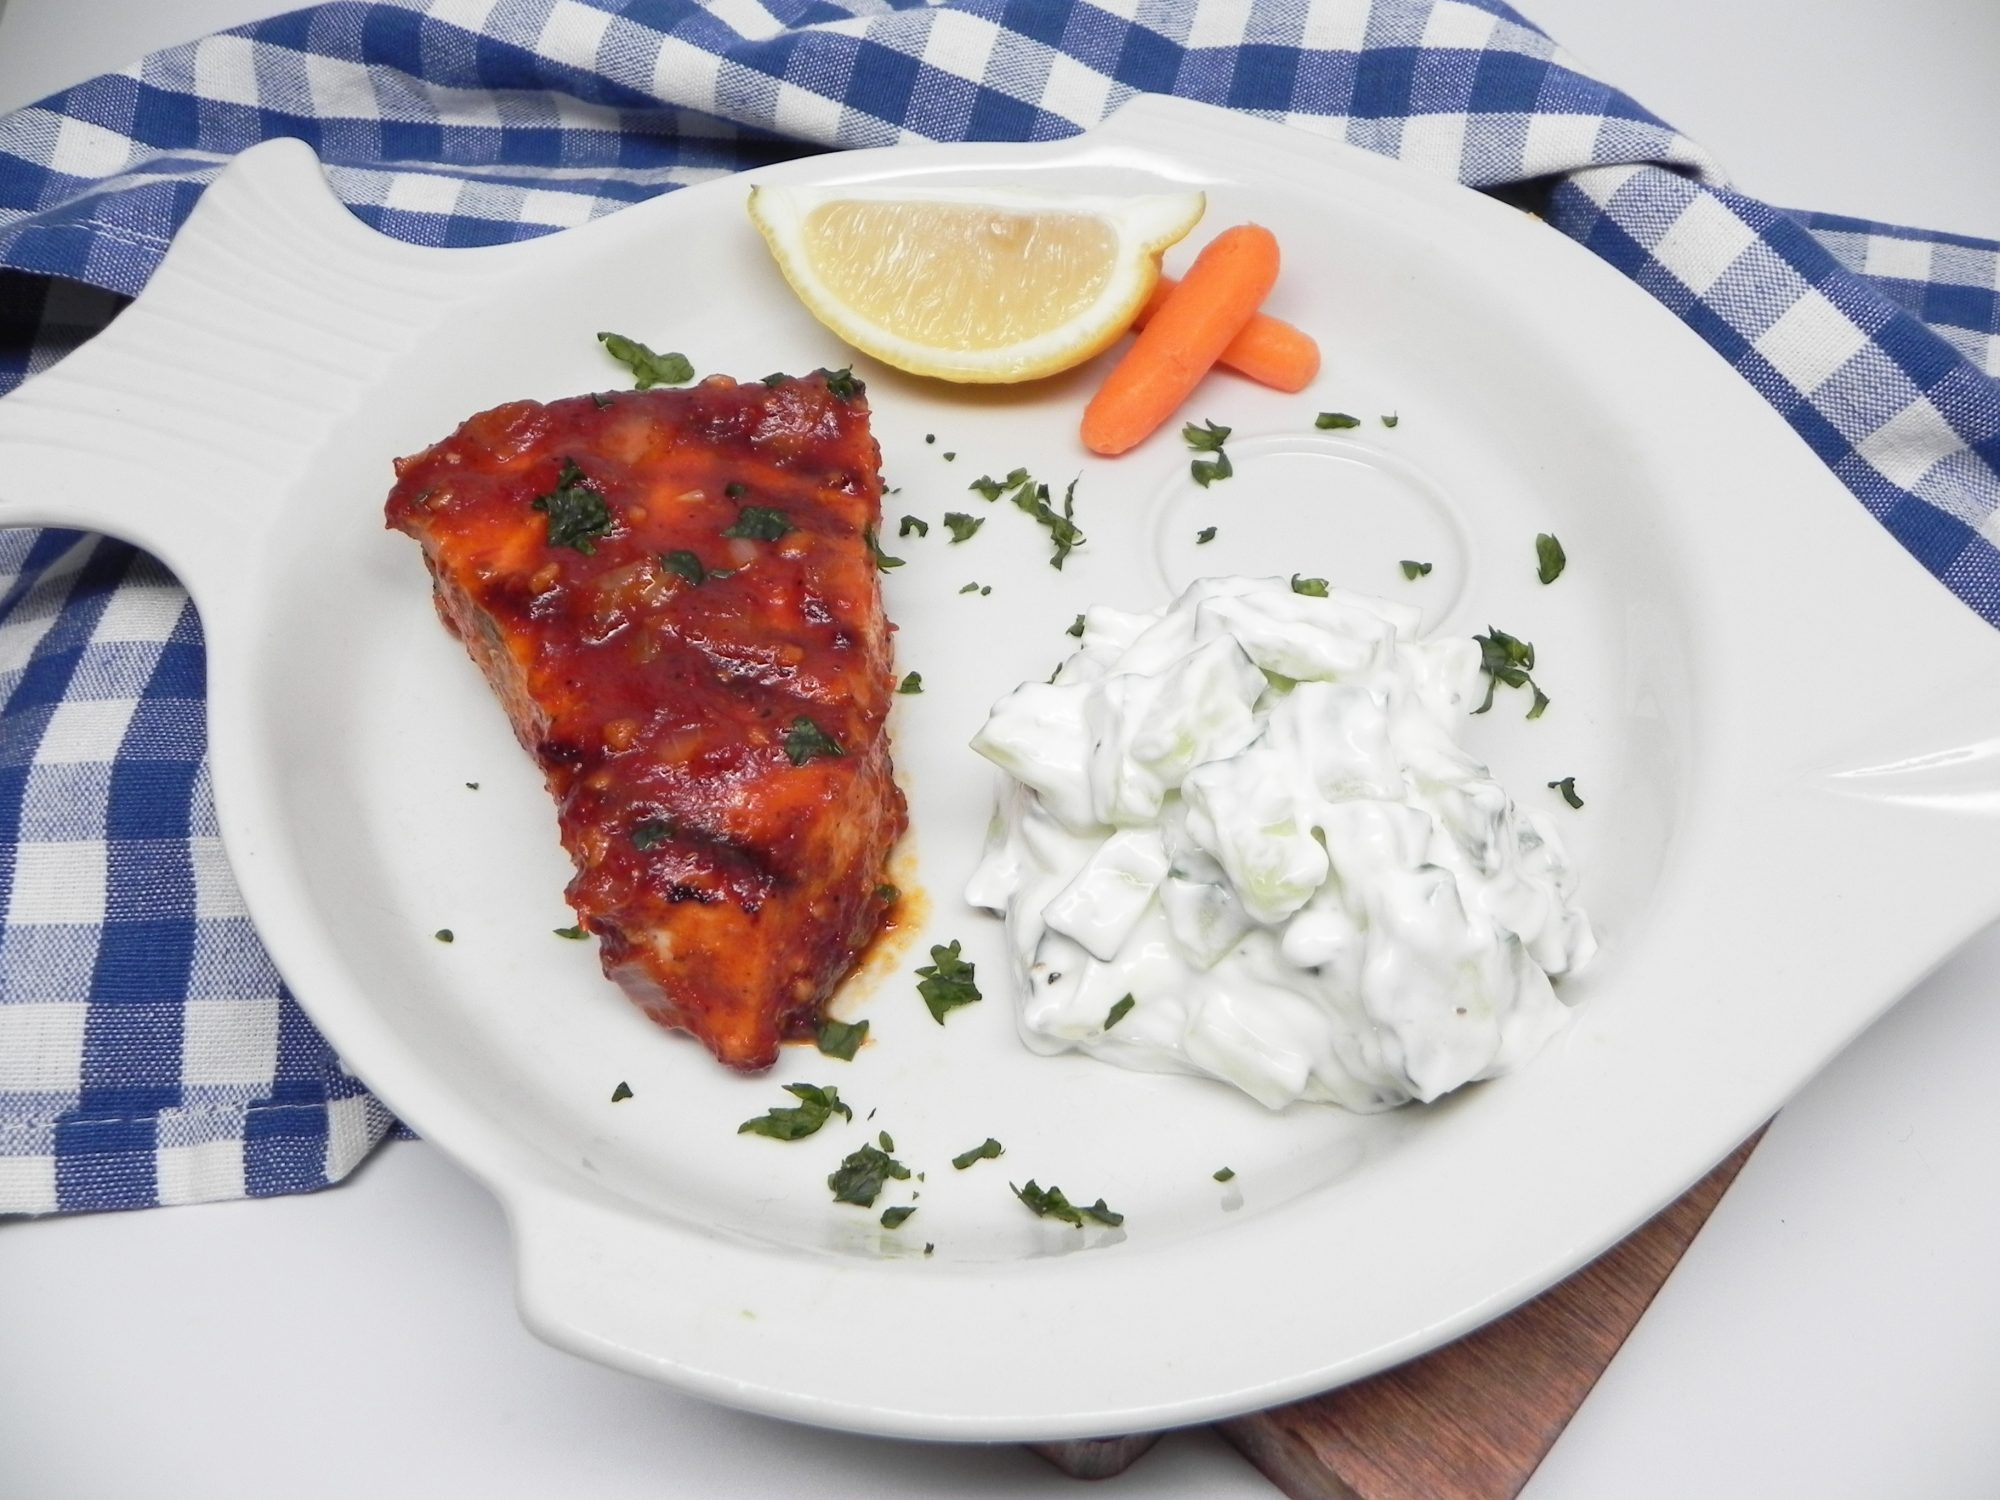 grilled swordfish with creamy cucumber sauce on white plate